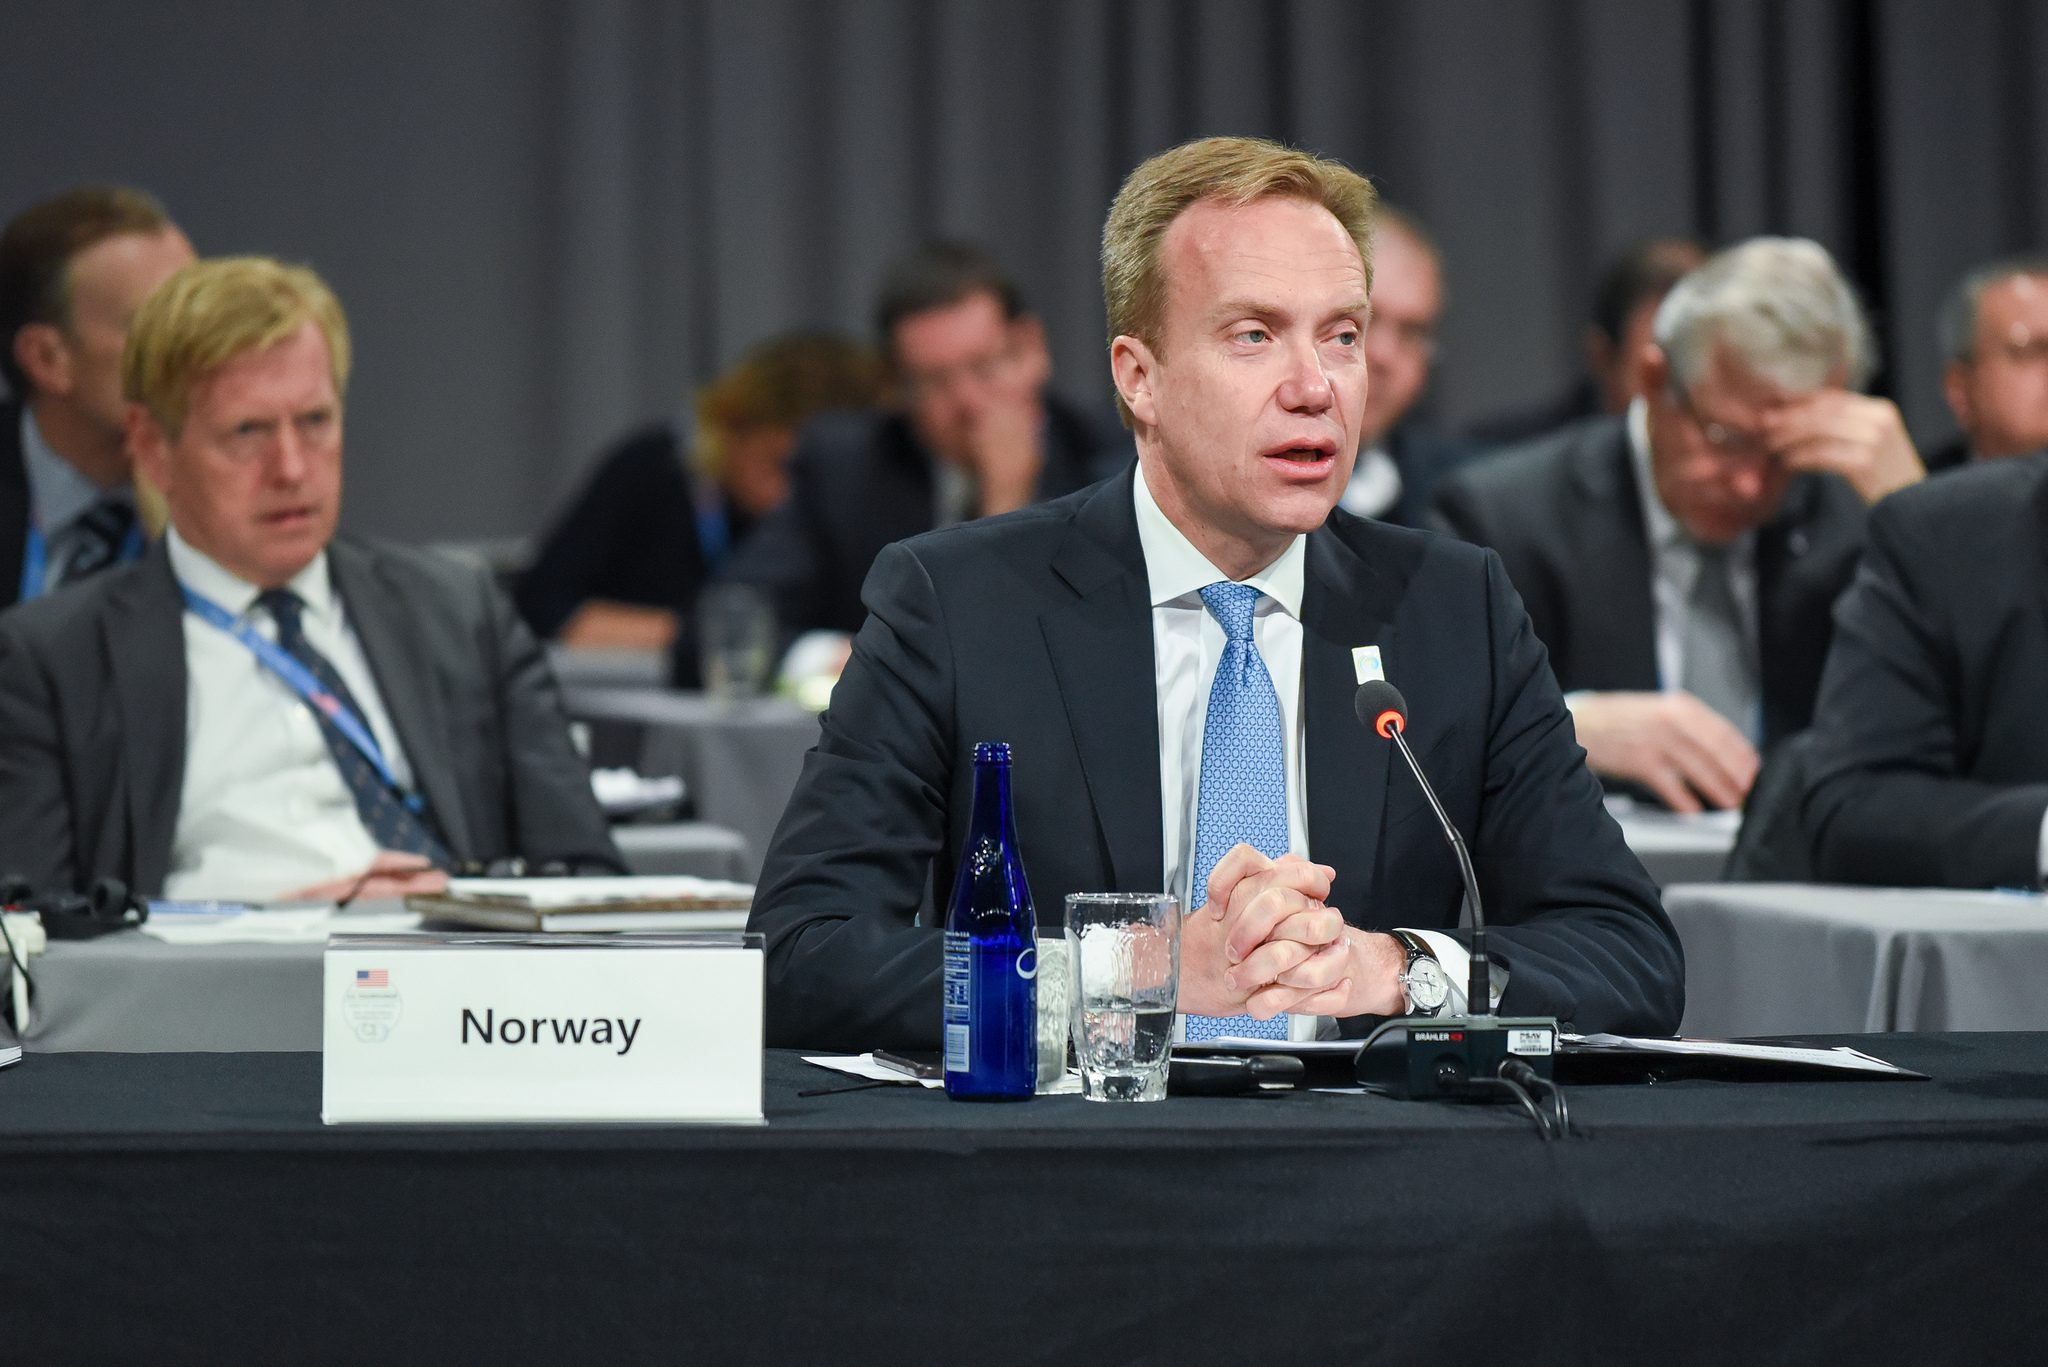 blog-arctic-council-continues-to-defy-pessimism-7